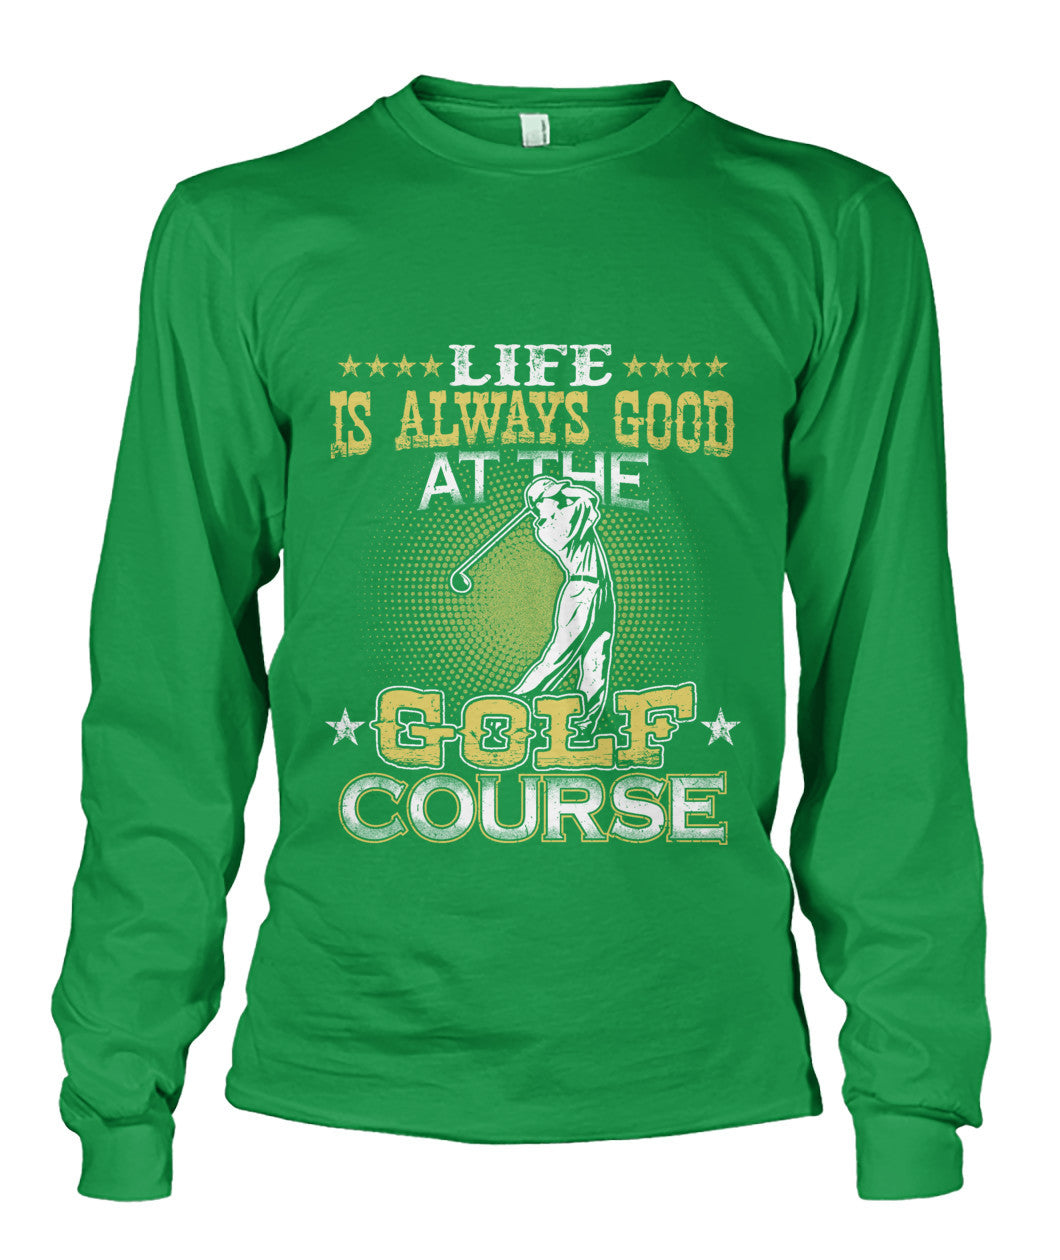 Life always good at the course shirt-Apparel - AllGolfUSA.COM